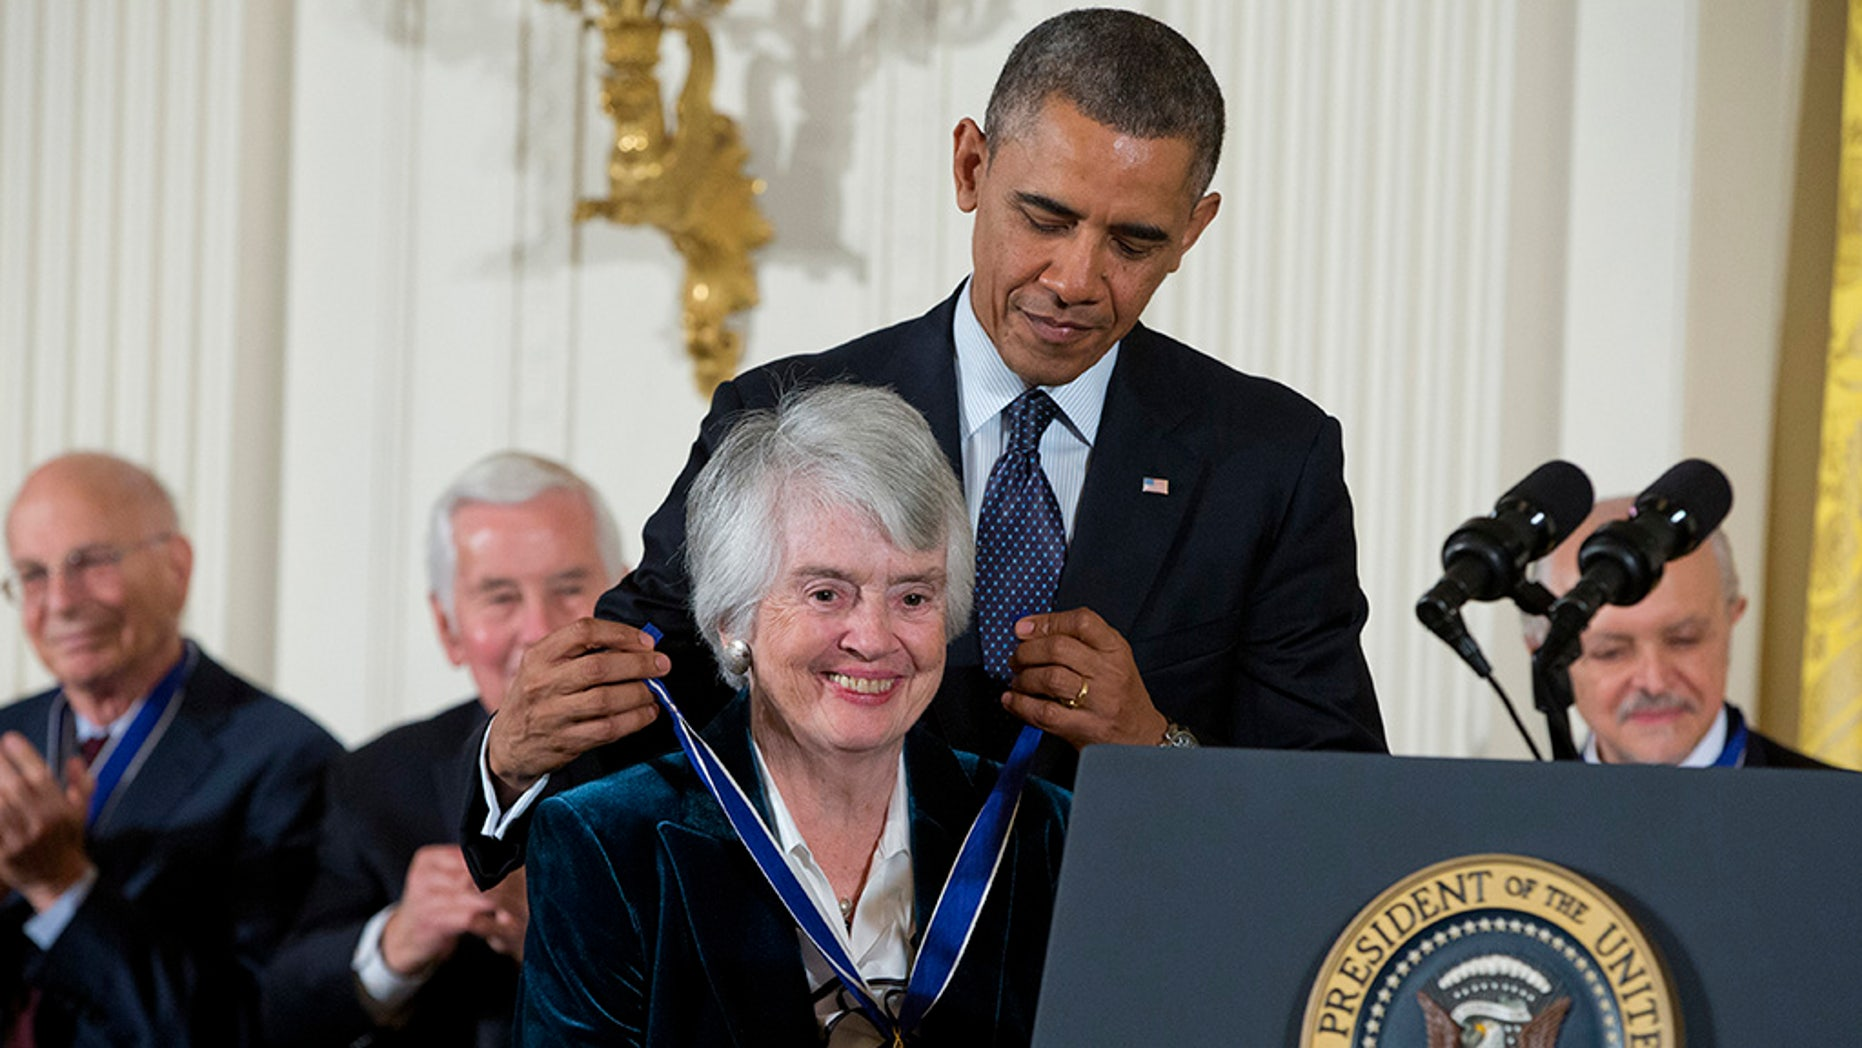 Judge Patricia Wald has died of pancreatic cancer at the age of 90. She is seen here receiving the Presidential Medal of Freedom from President Barack Obama in 2013